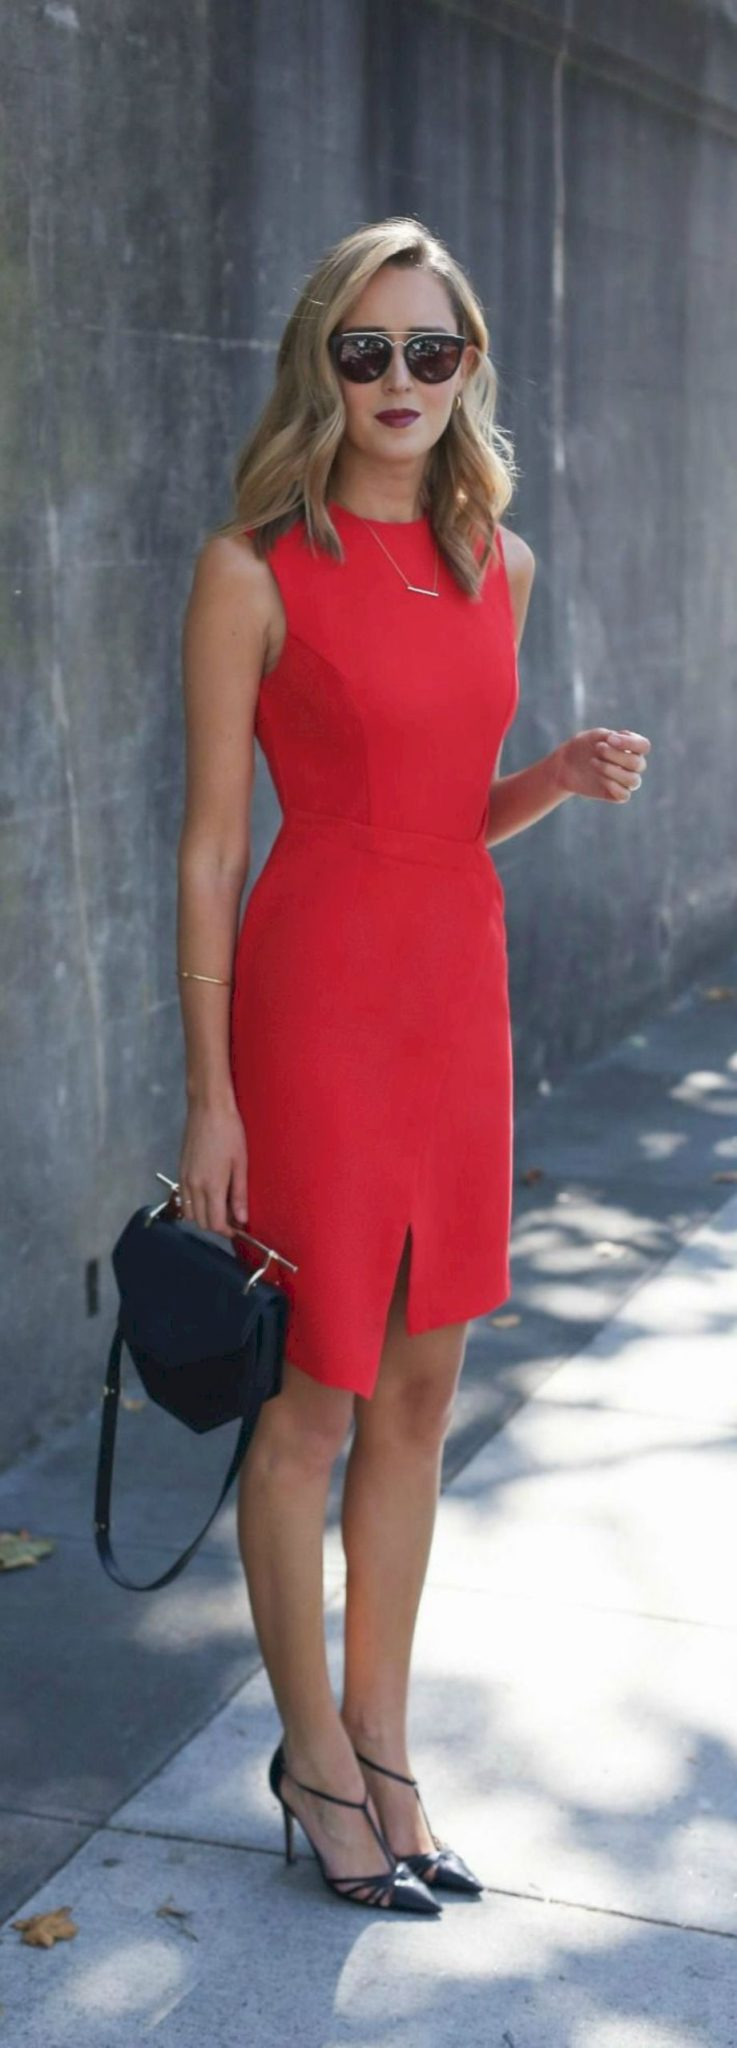 Formal midi dresses outfits 26